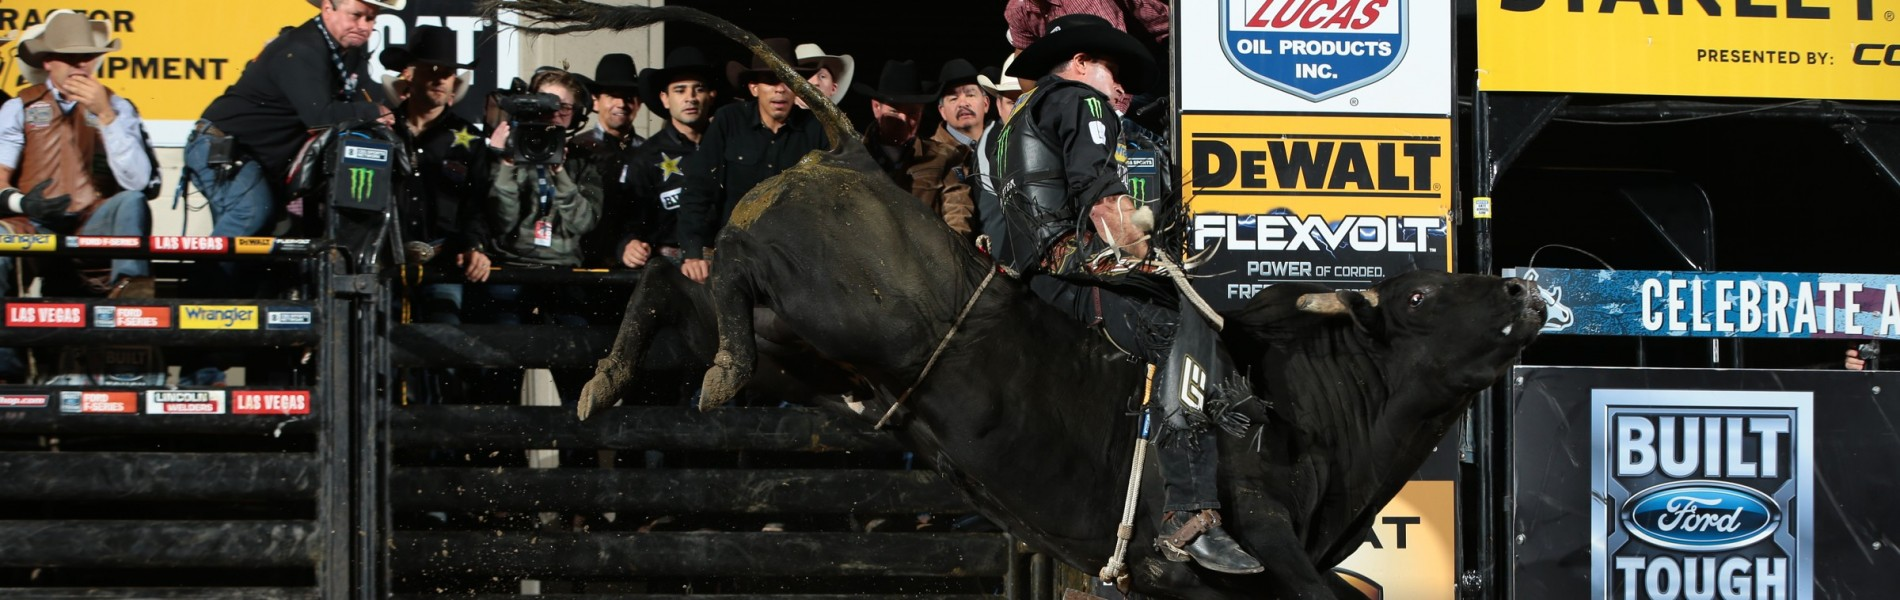 Guilherme Marchi rides D&H Cattle Company's Shocker for 86.25 for his 600th bull ride during the second round of the Billings Built Ford Tough series PBR.